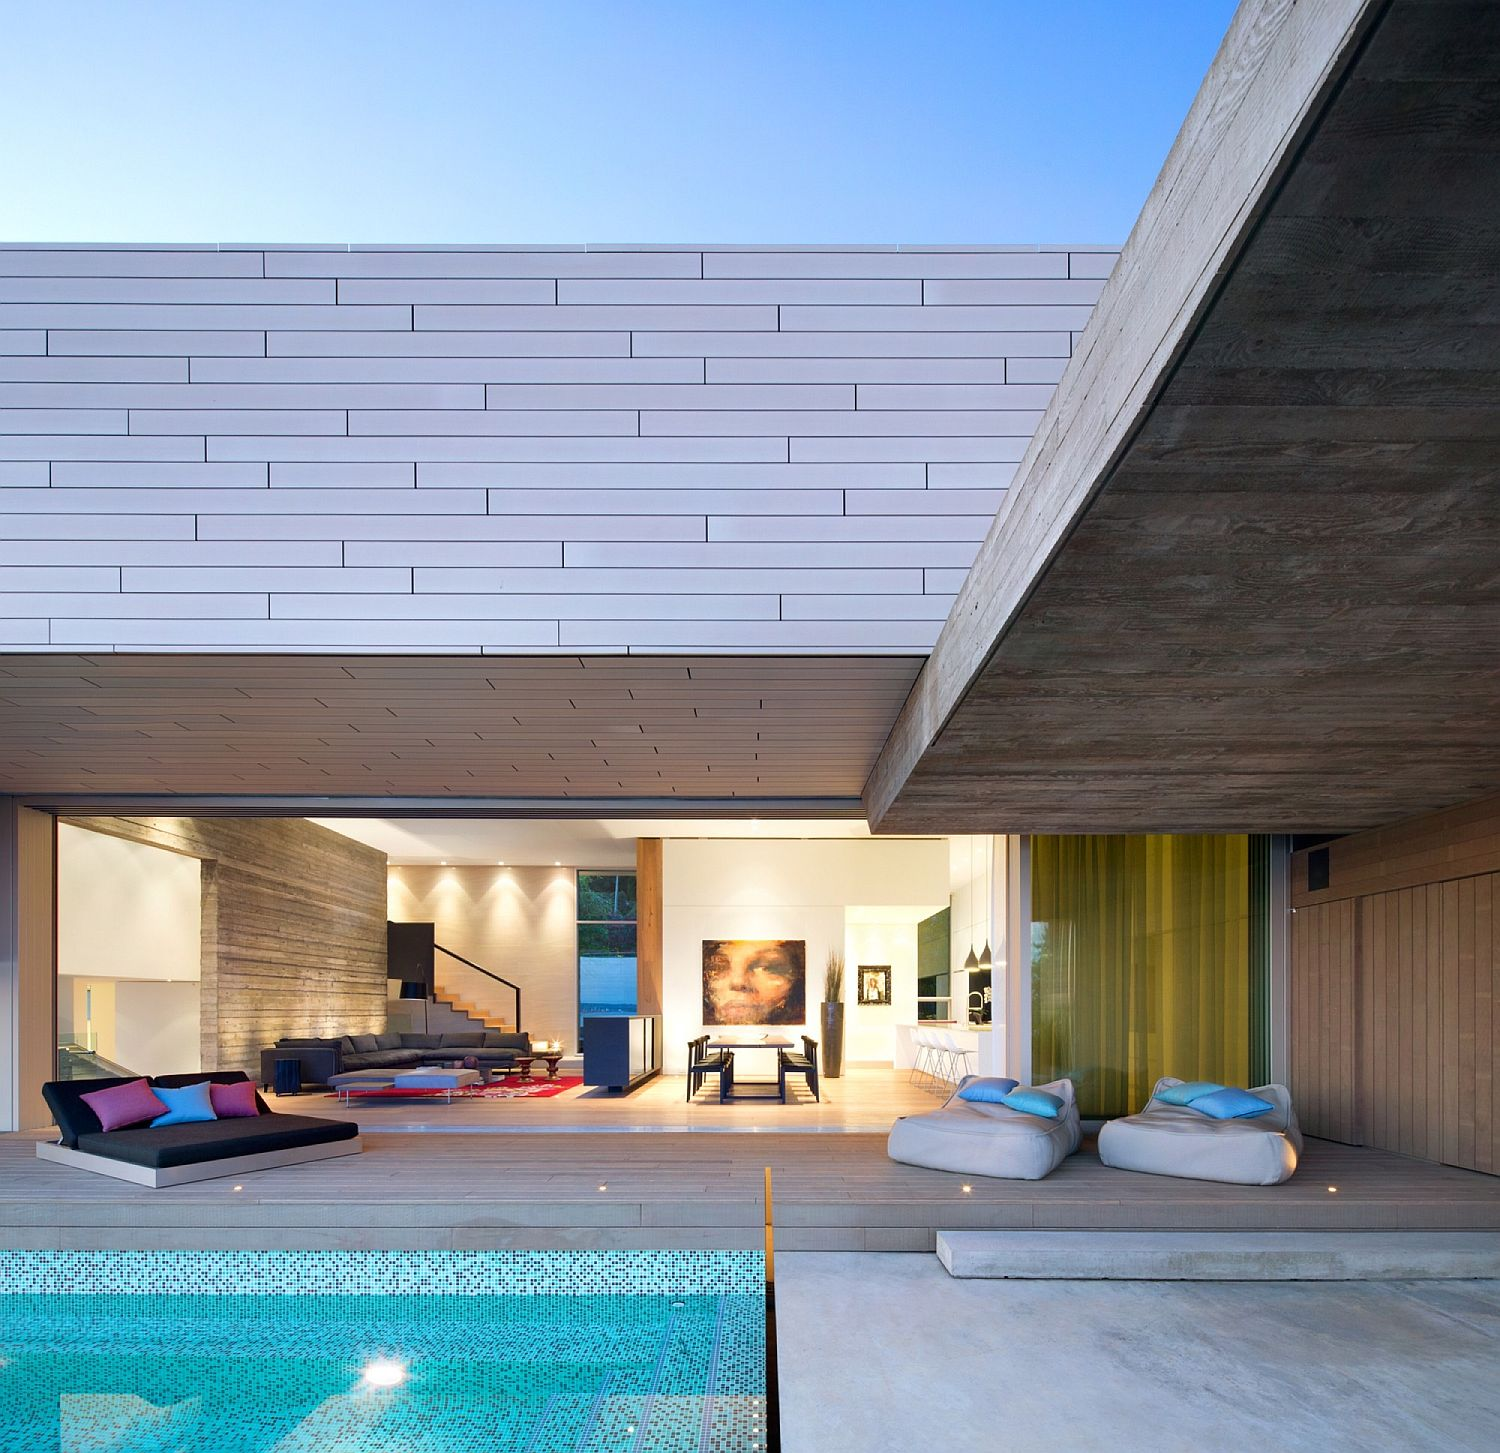 Deck and pool area of the dashing Sunset House in Canada